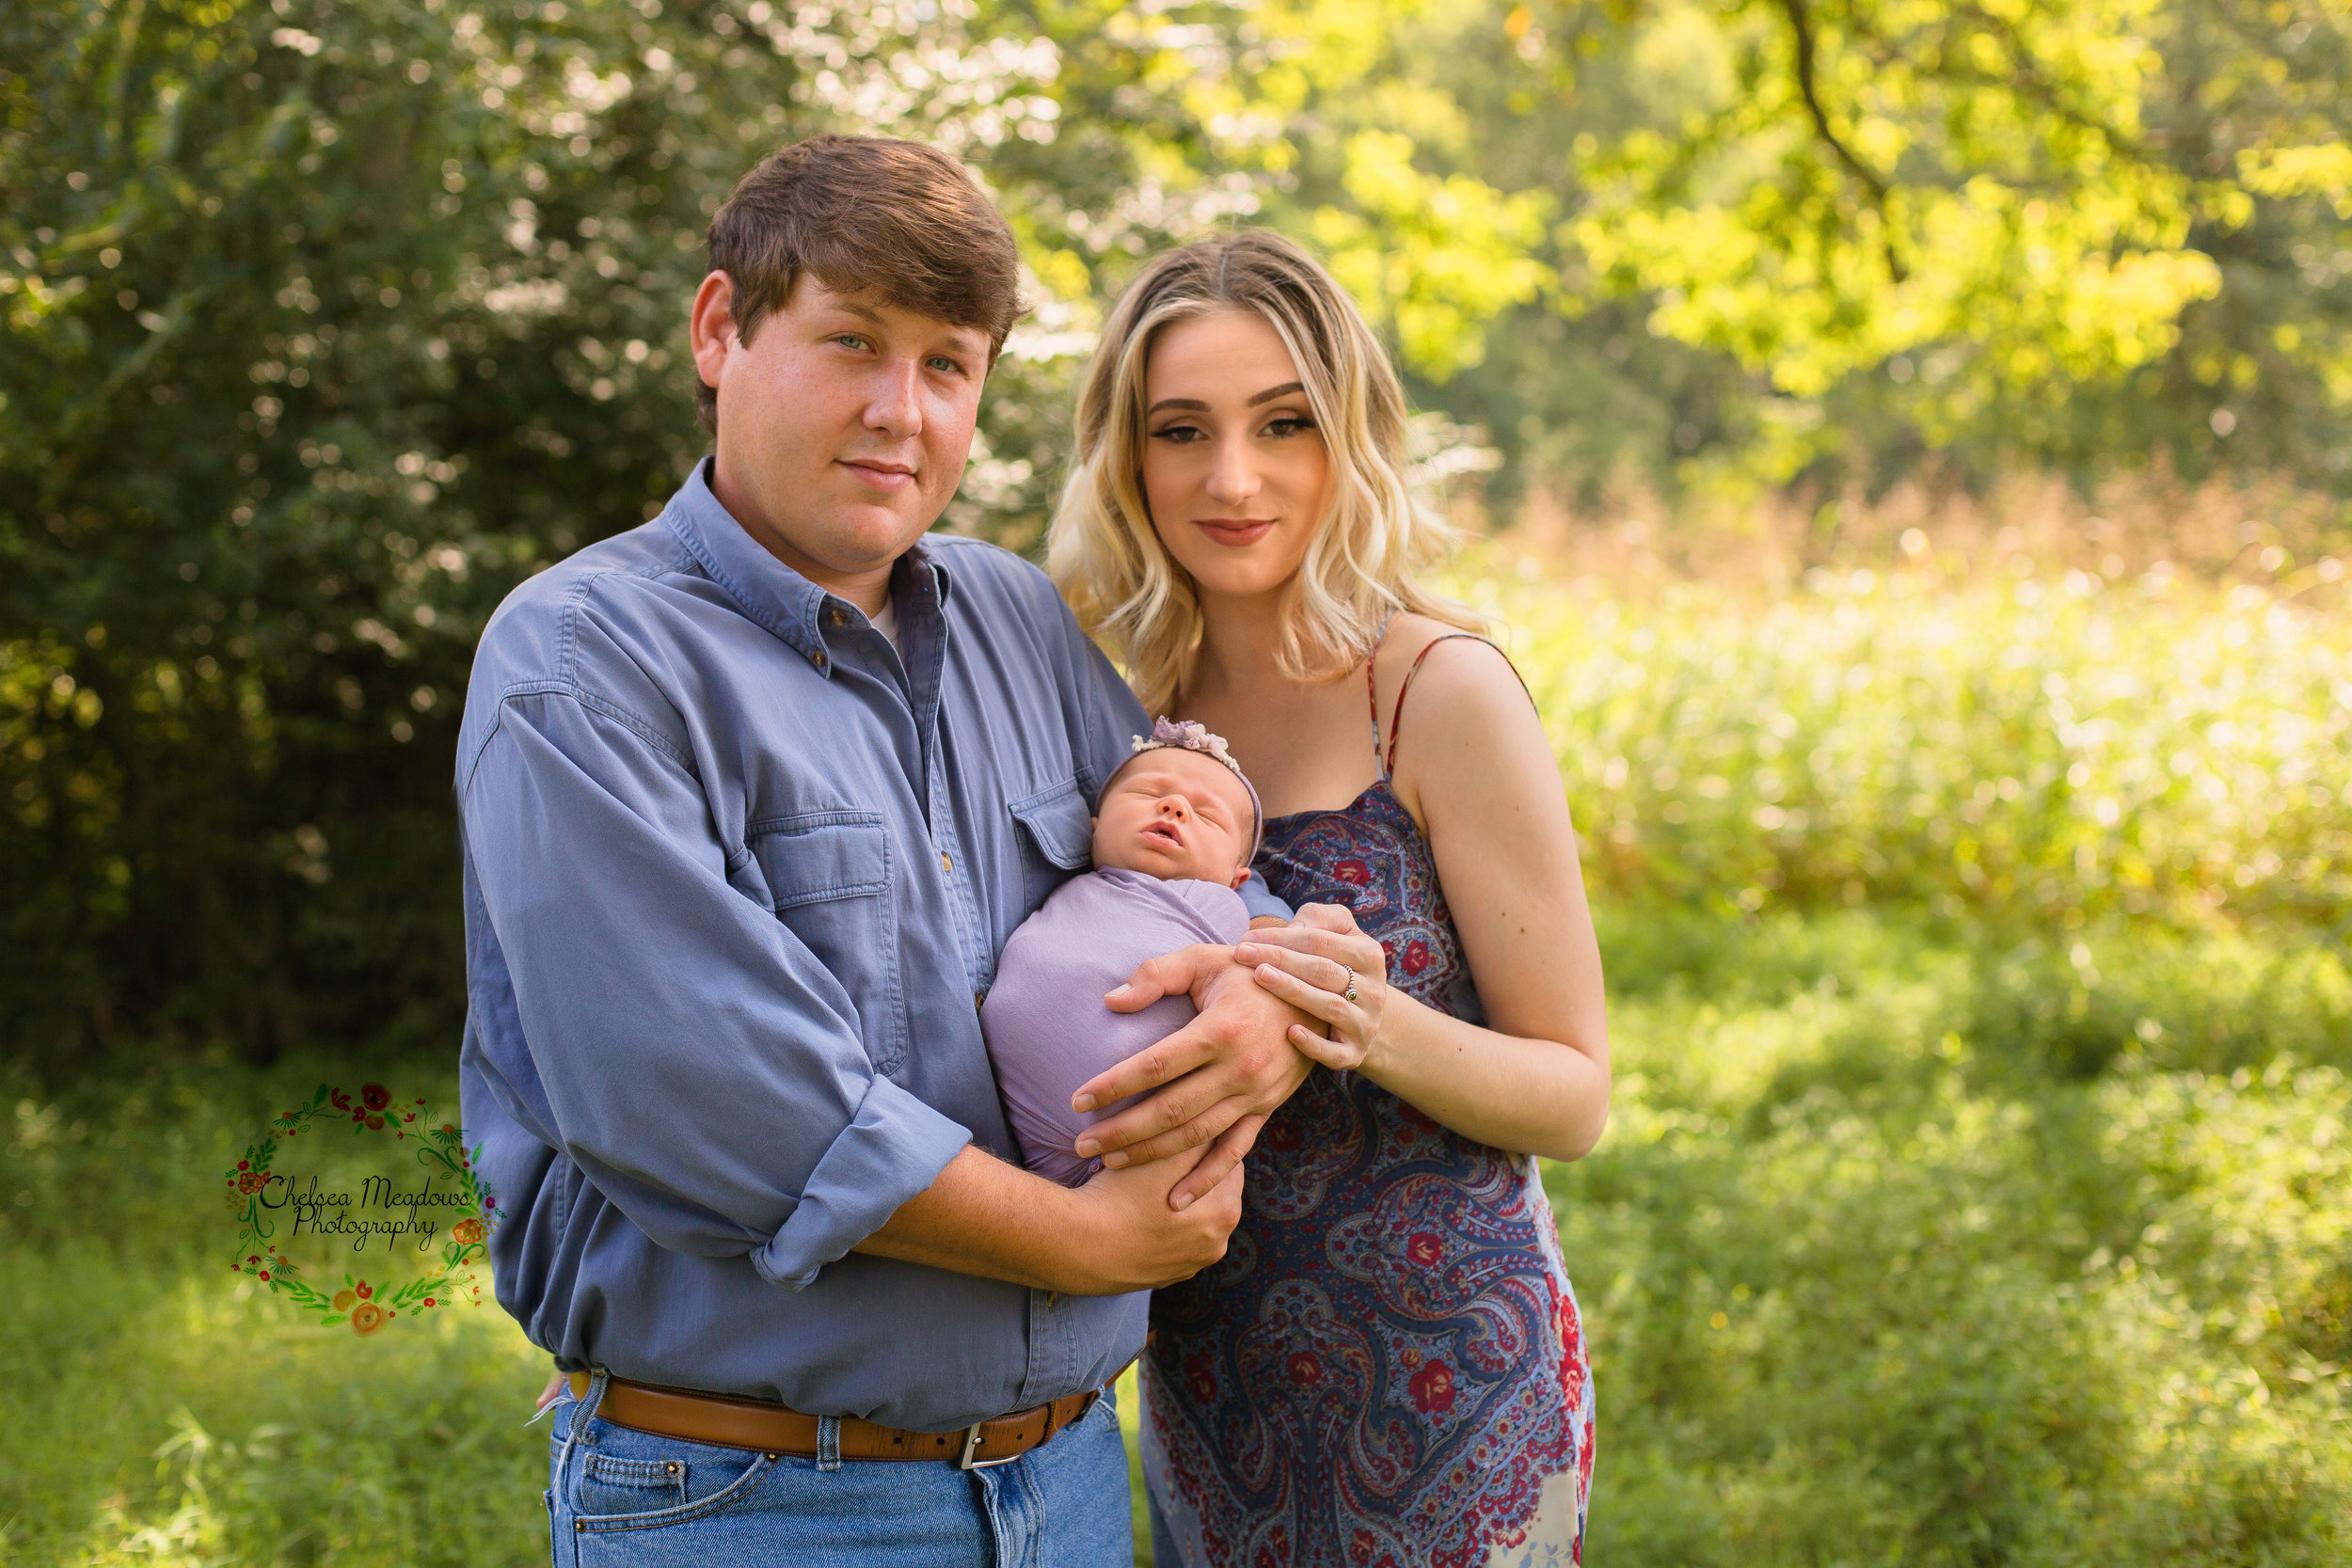 Sawyer Newborn Session - Nashville Newborn Photographer - Chelsea Meadows Photography (92).jpg